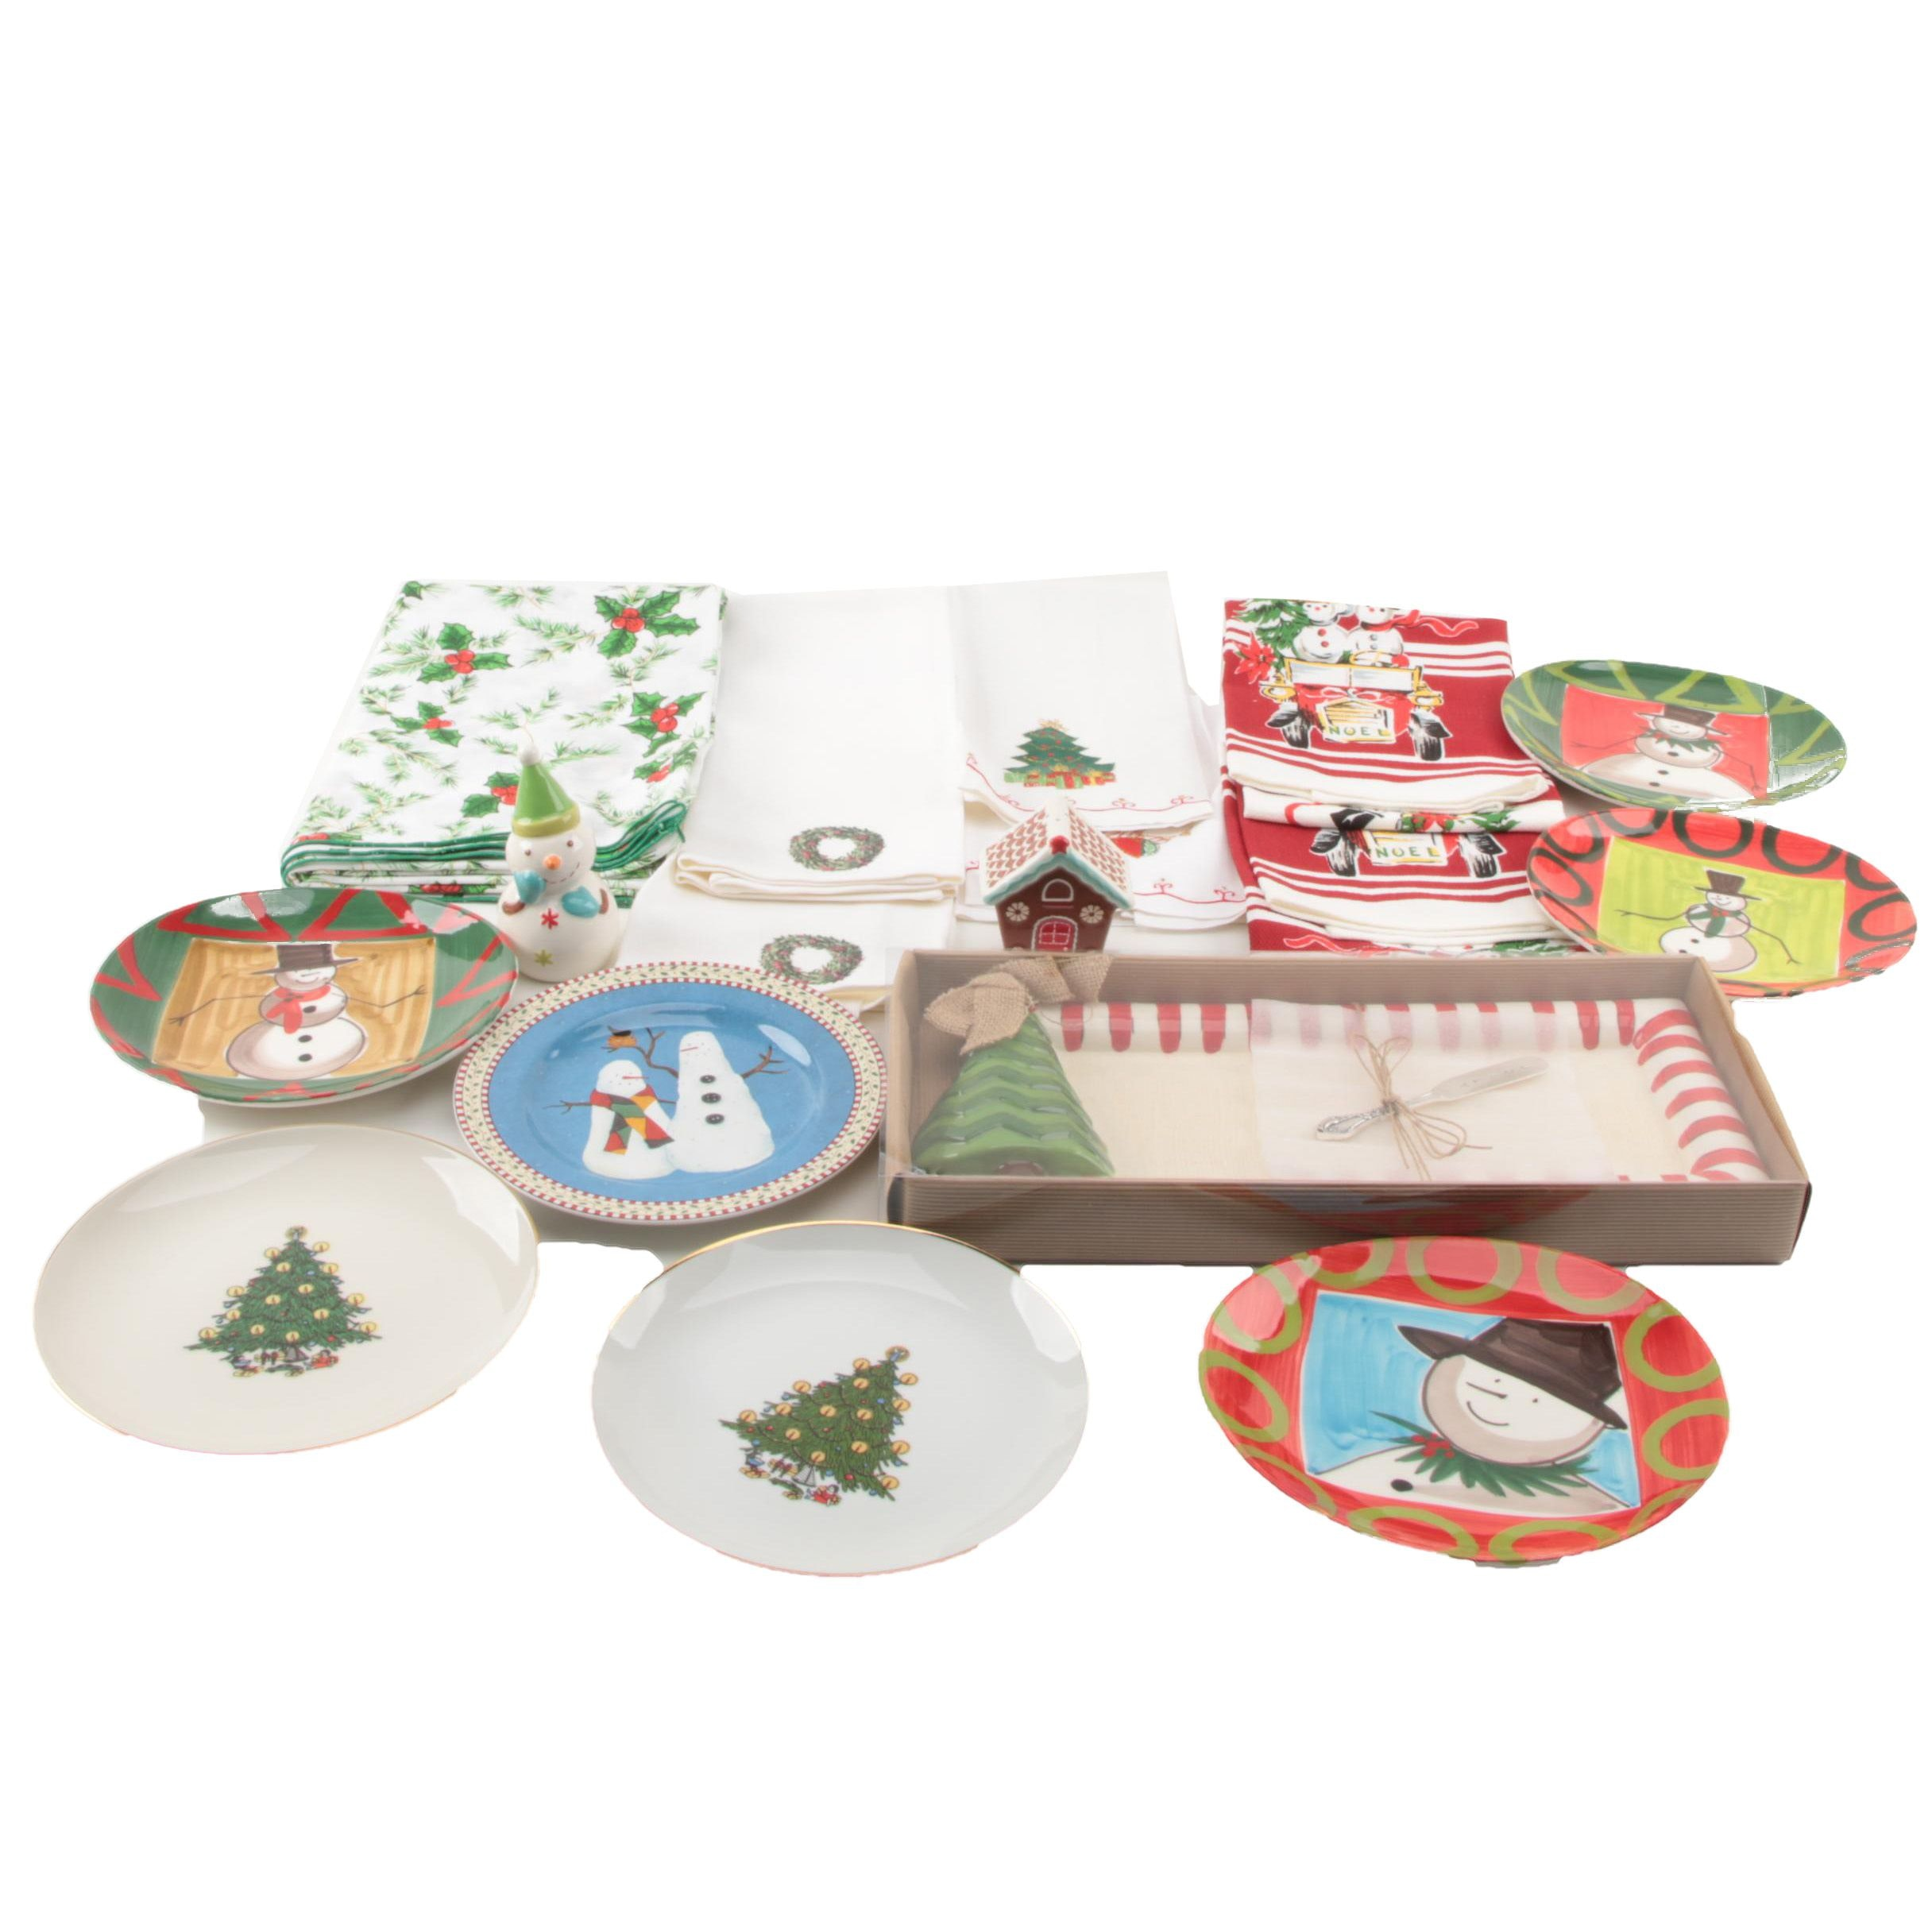 Winter and Christmas Themed Decor and Serveware